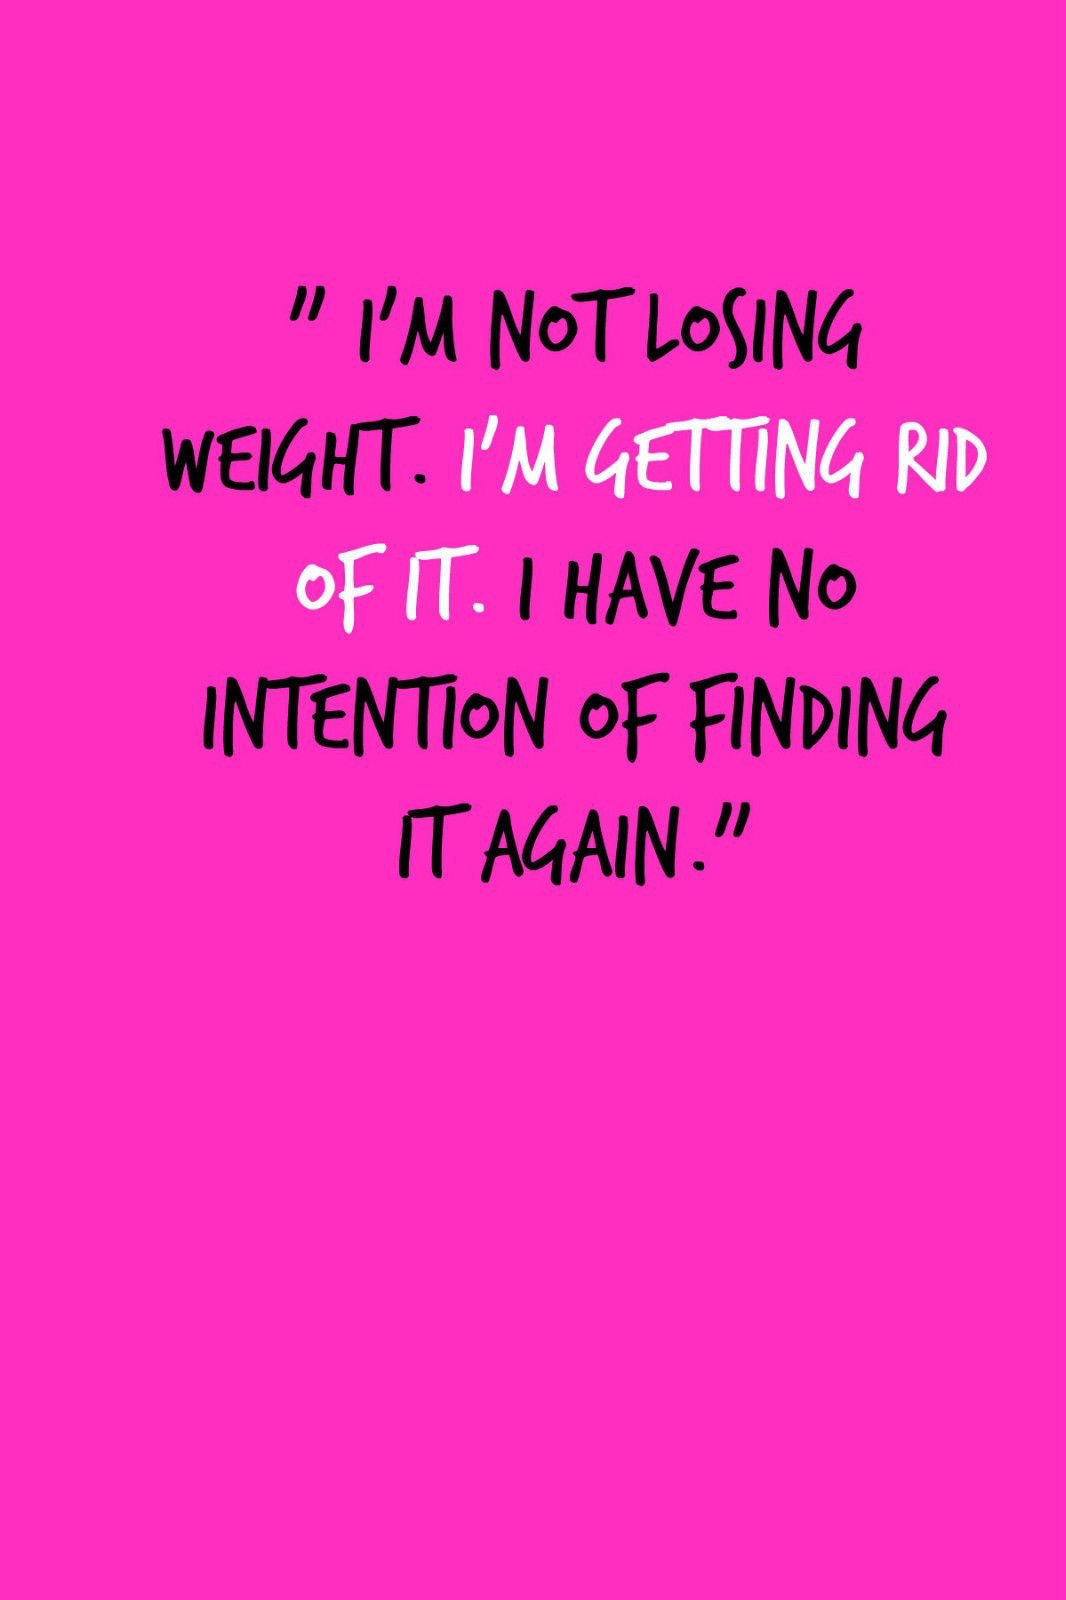 Weight loss doctors 77095 photo 3